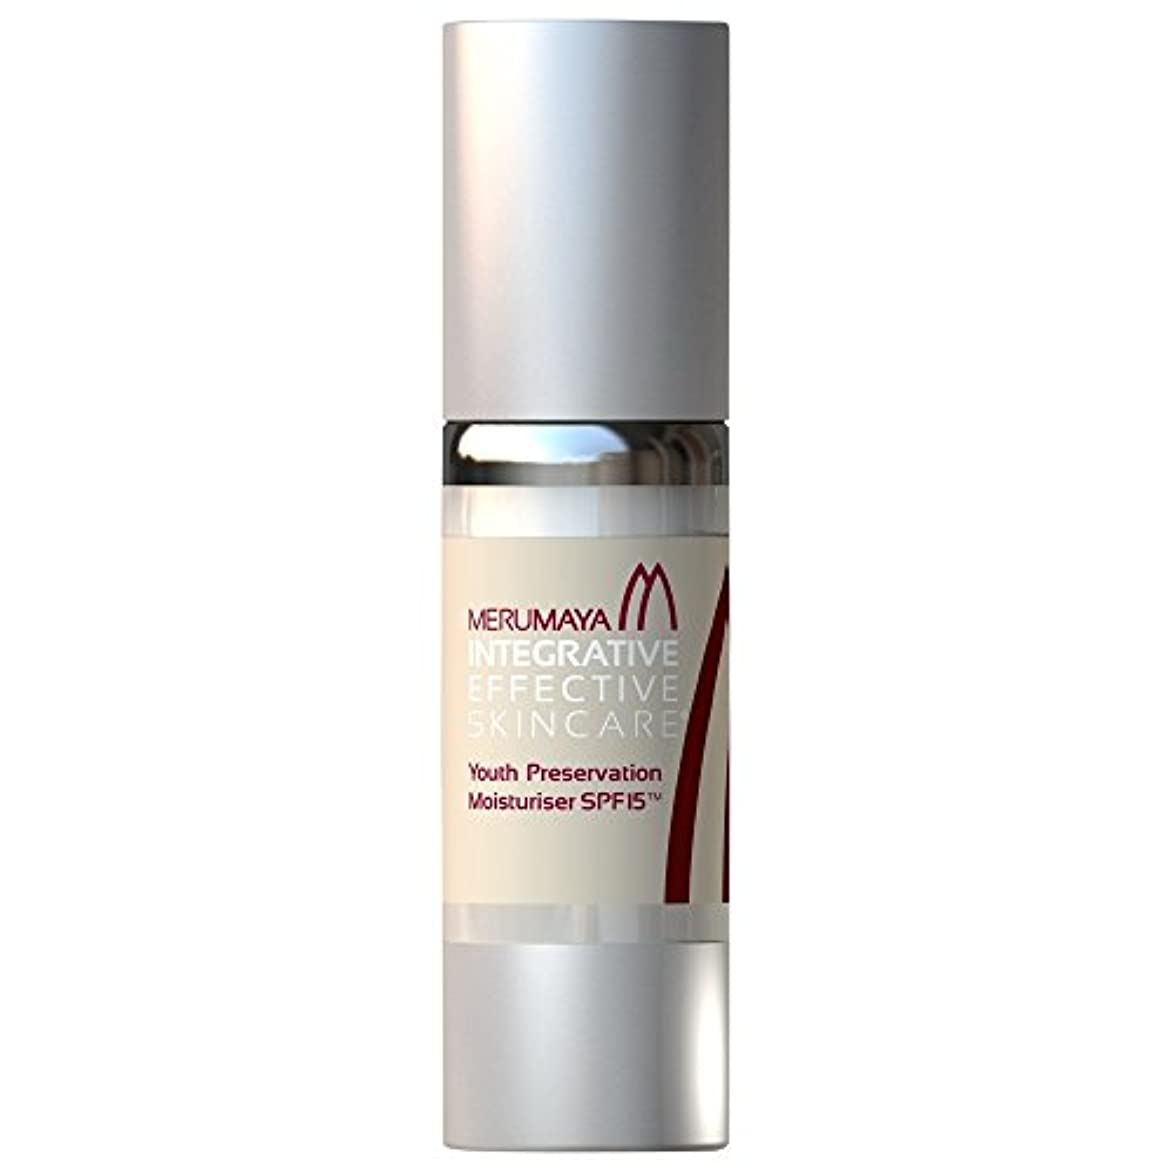 Merumaya若者の保全保湿?のSpf15、30ミリリットル (Merumaya) (x6) - MERUMAYA Youth Preservation Moisturiser? SPF15, 30ml (Pack of...